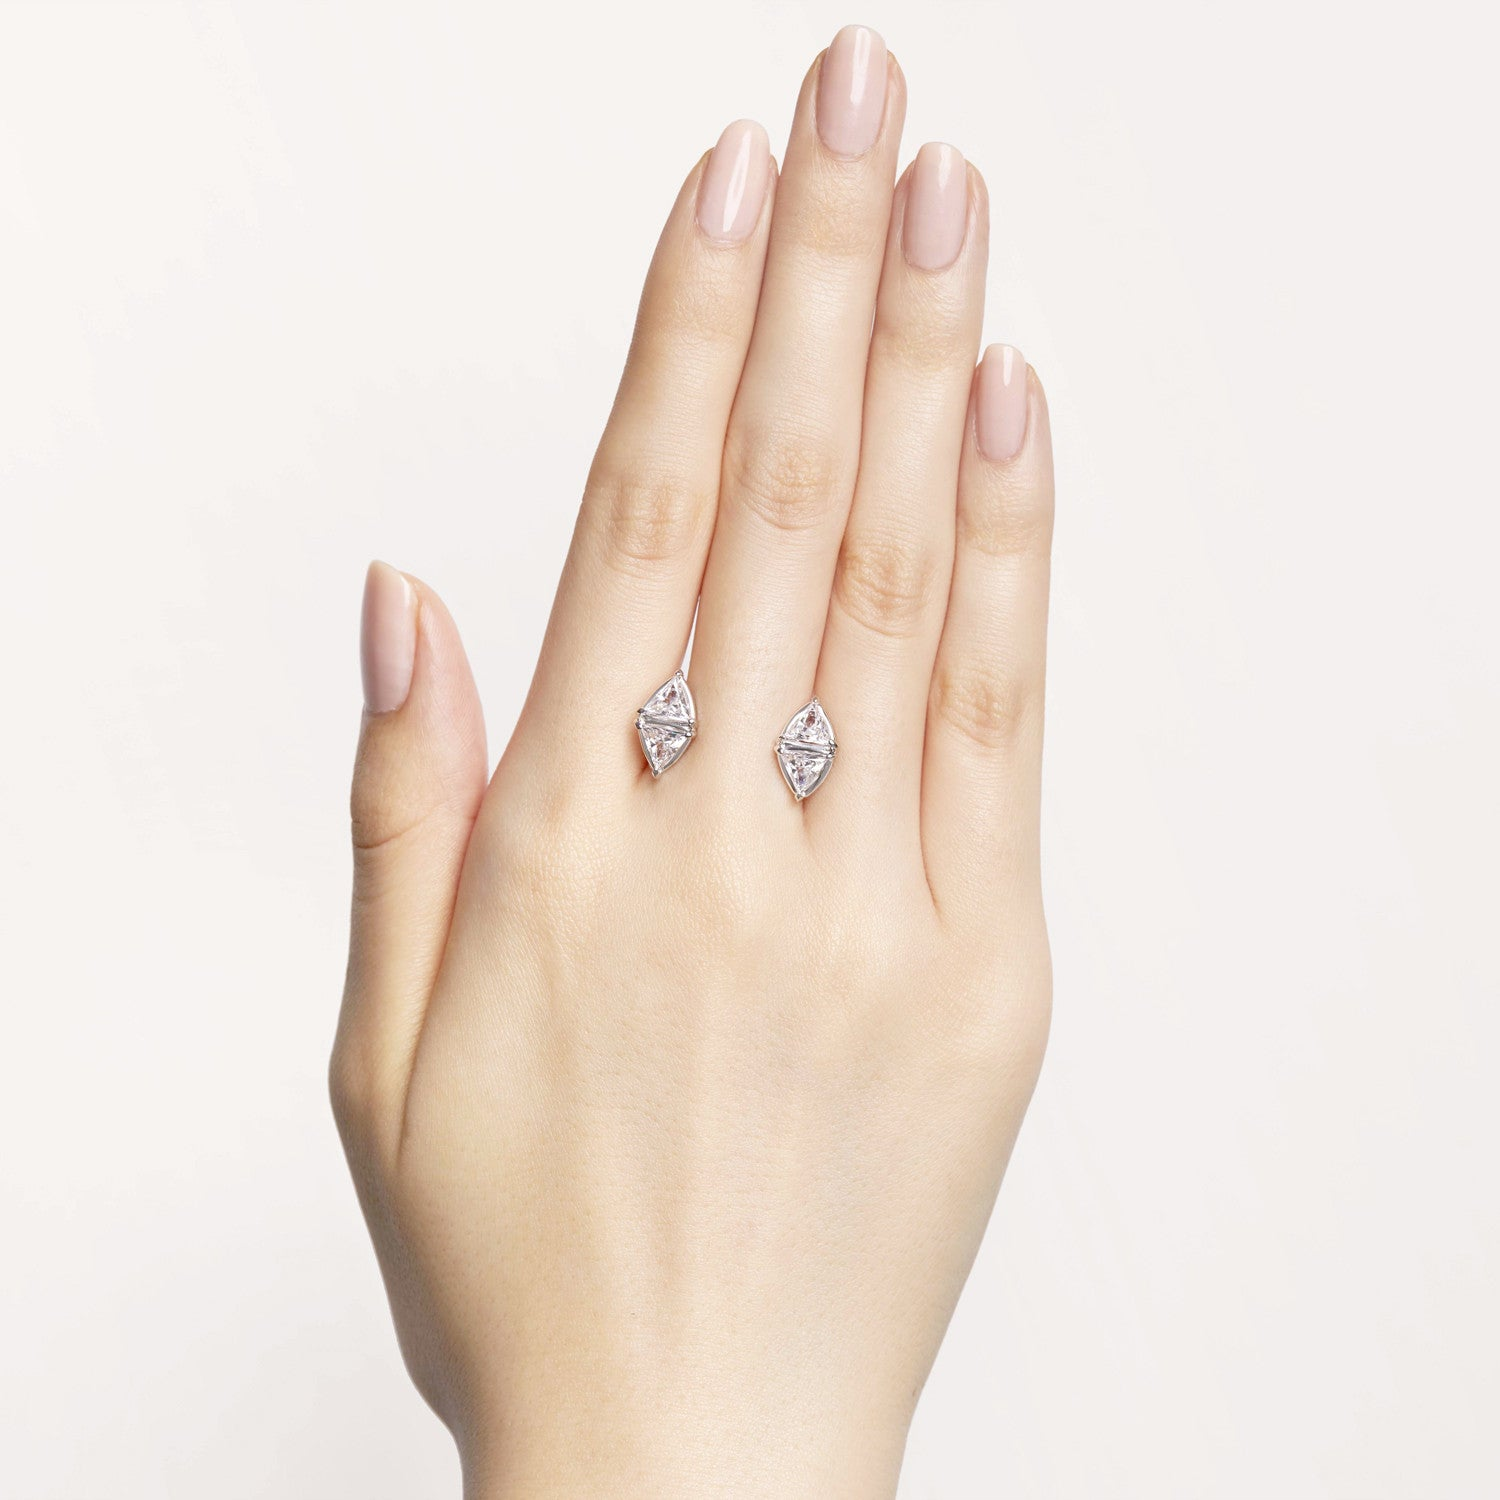 Triangle-shaped white diamonds floating cuffs on your skin